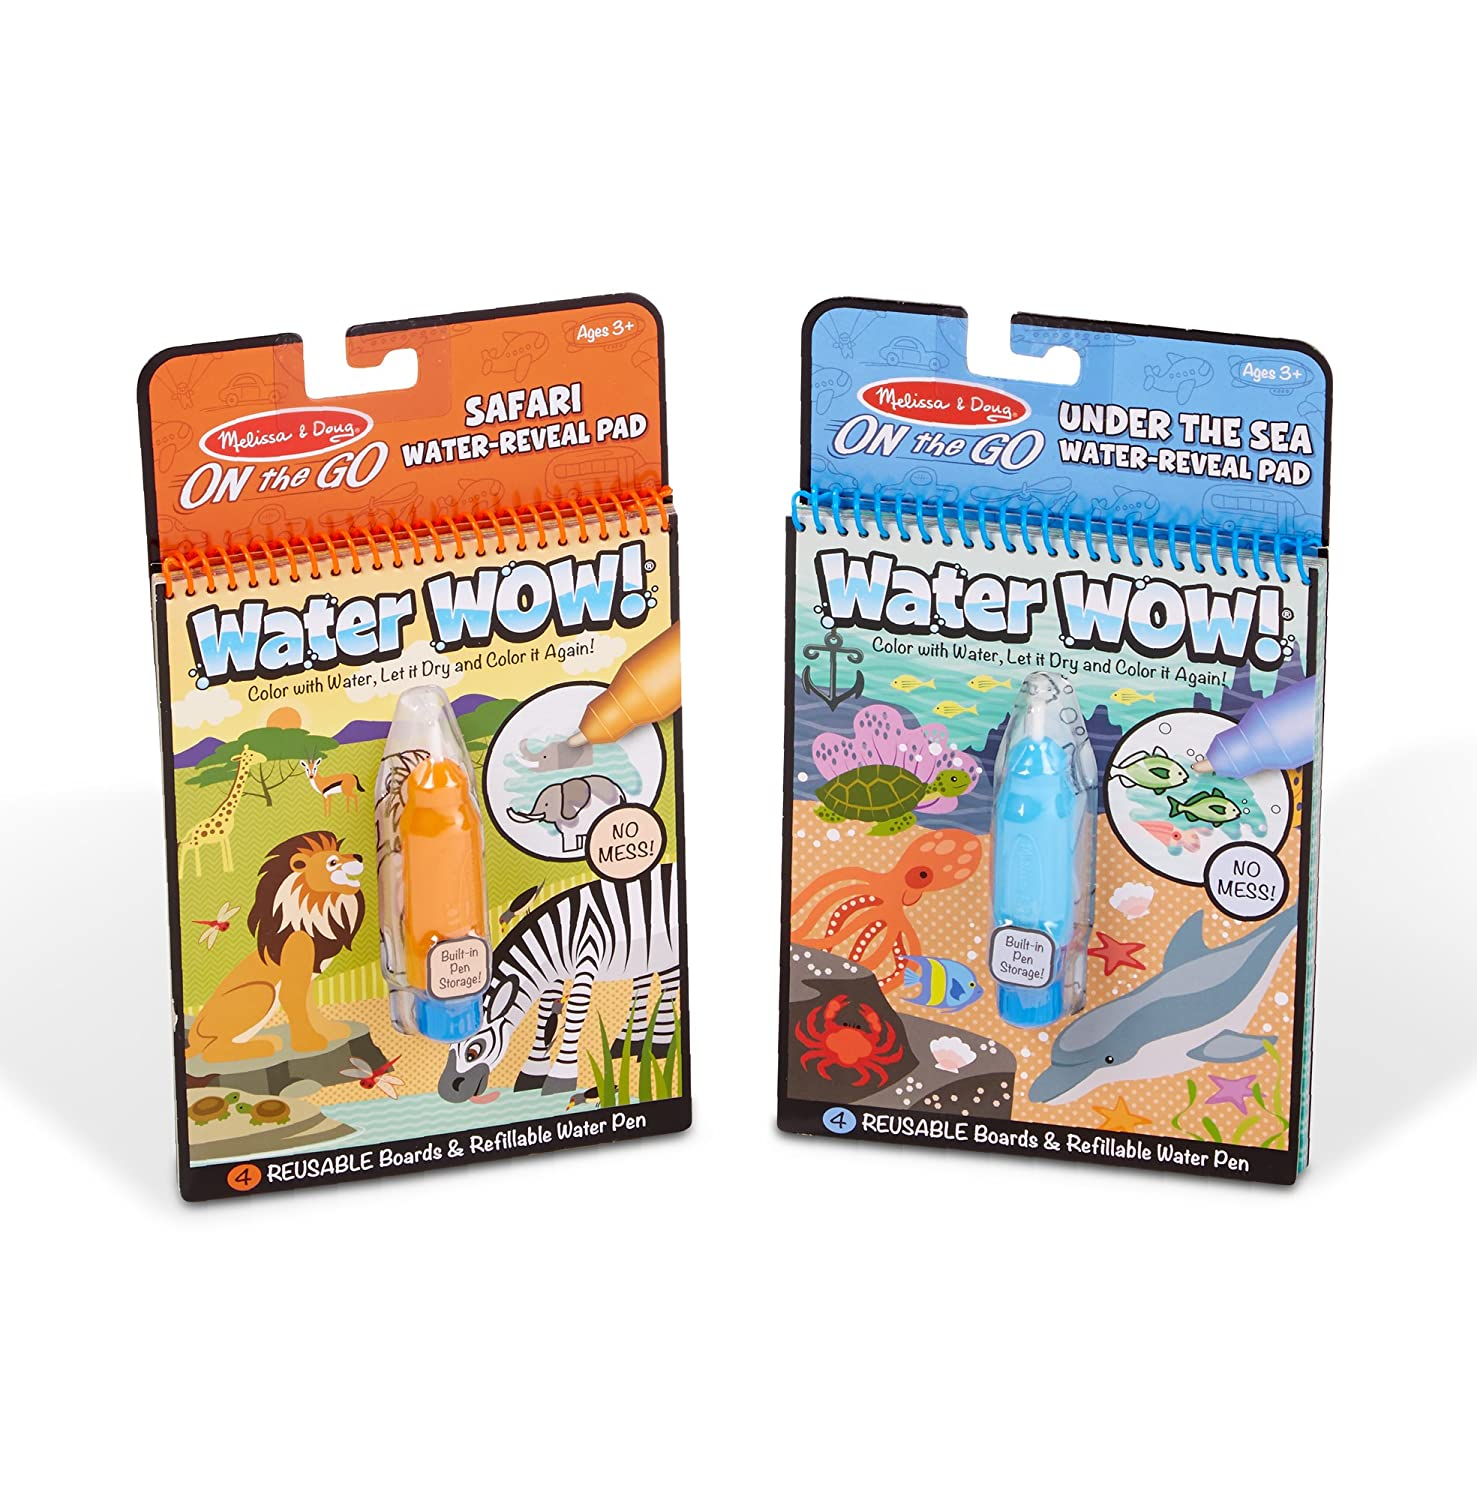 Melissa & Doug Wow! Under The Sea Water Reveal Pad and Safari Water Reveal Pad Bundle